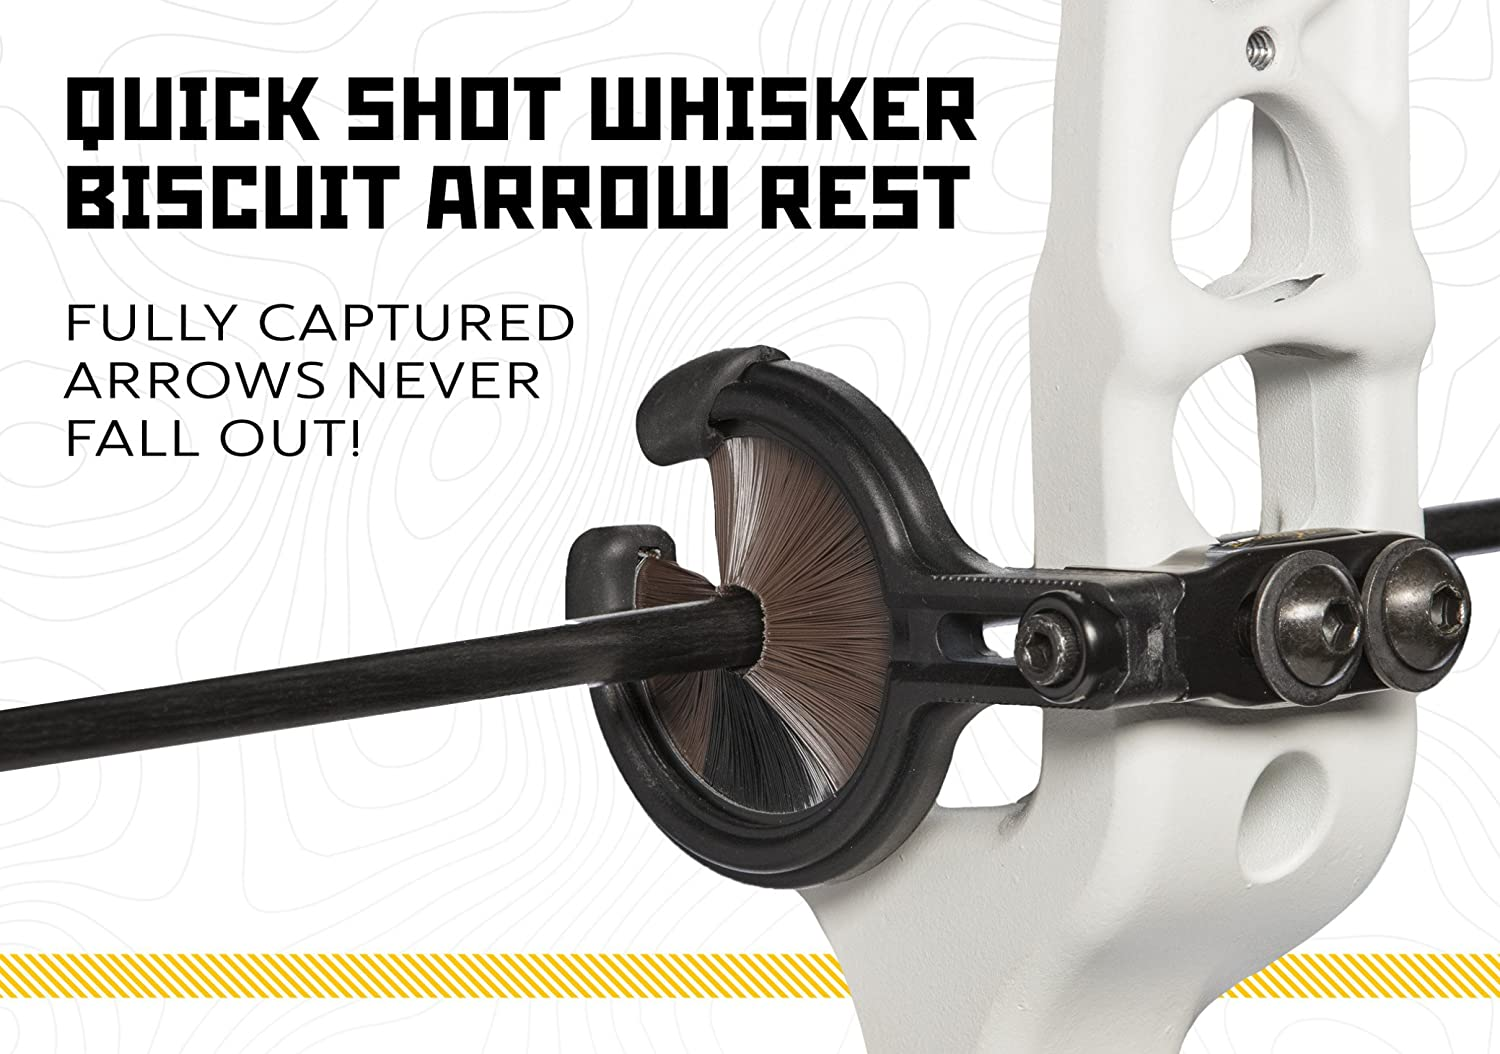 Accessories Charitable Trophy Ridge Large Whisker Bicscuit Arrow Rest Bow Archery Used With Mount Nice